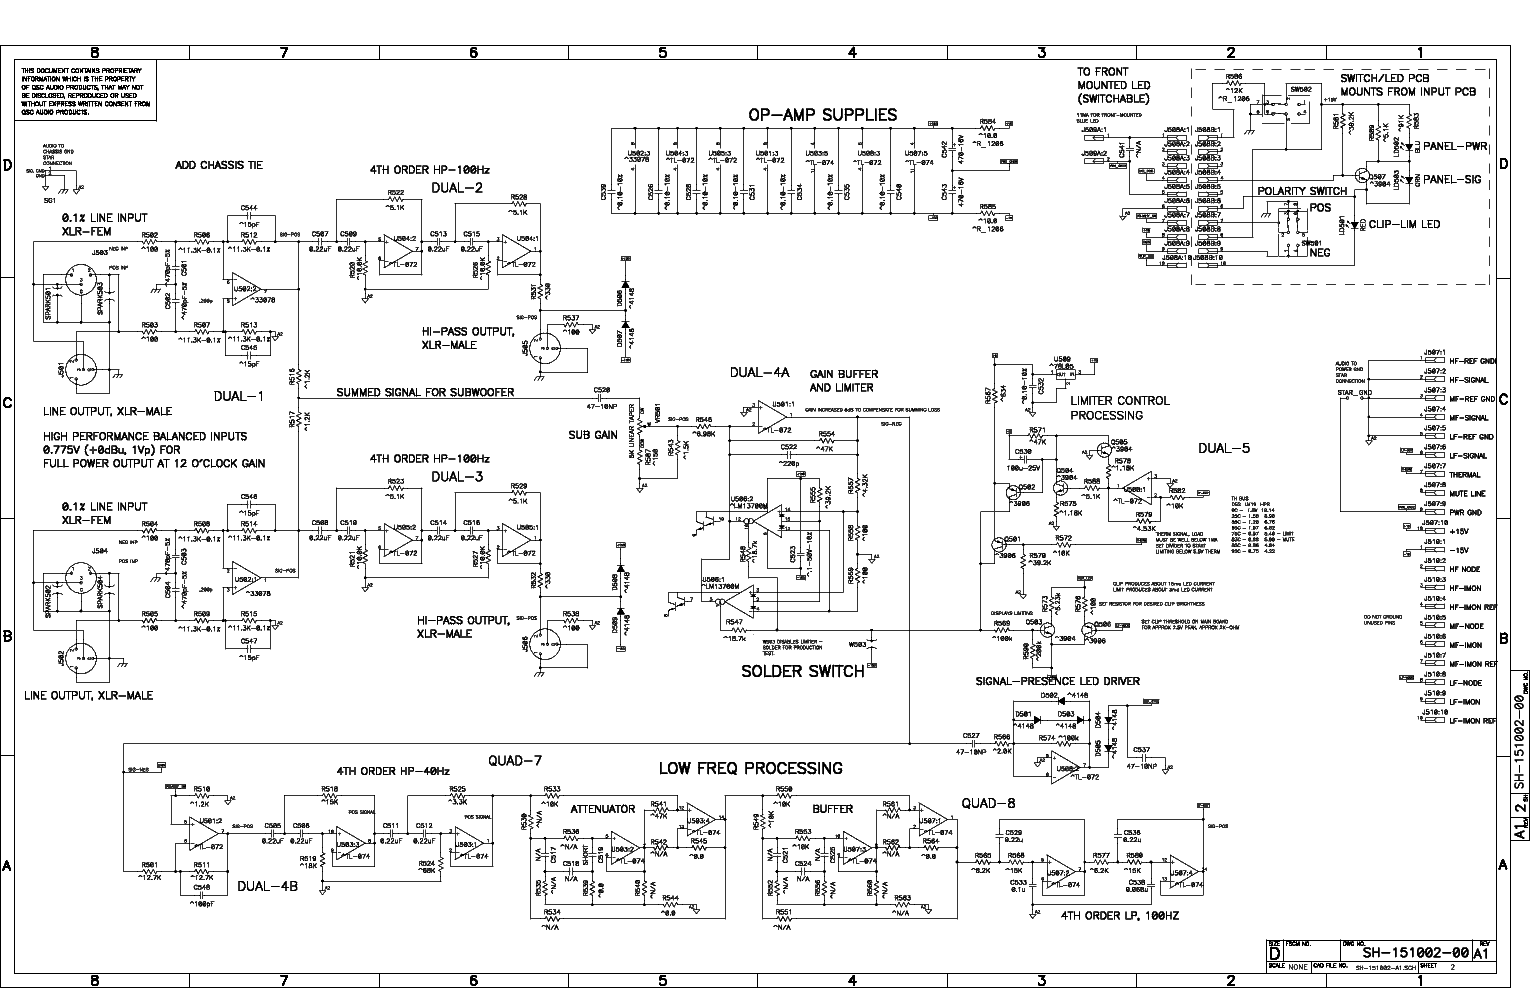 qsc_hpr151i.pdf_1 Qsc Plx Schematic Diagram on isa 300ti, pl340 power supply, gx 3 amplifier, k-12 ksub, 1400 power amp, k10 speaker, usa 900 amplifier,